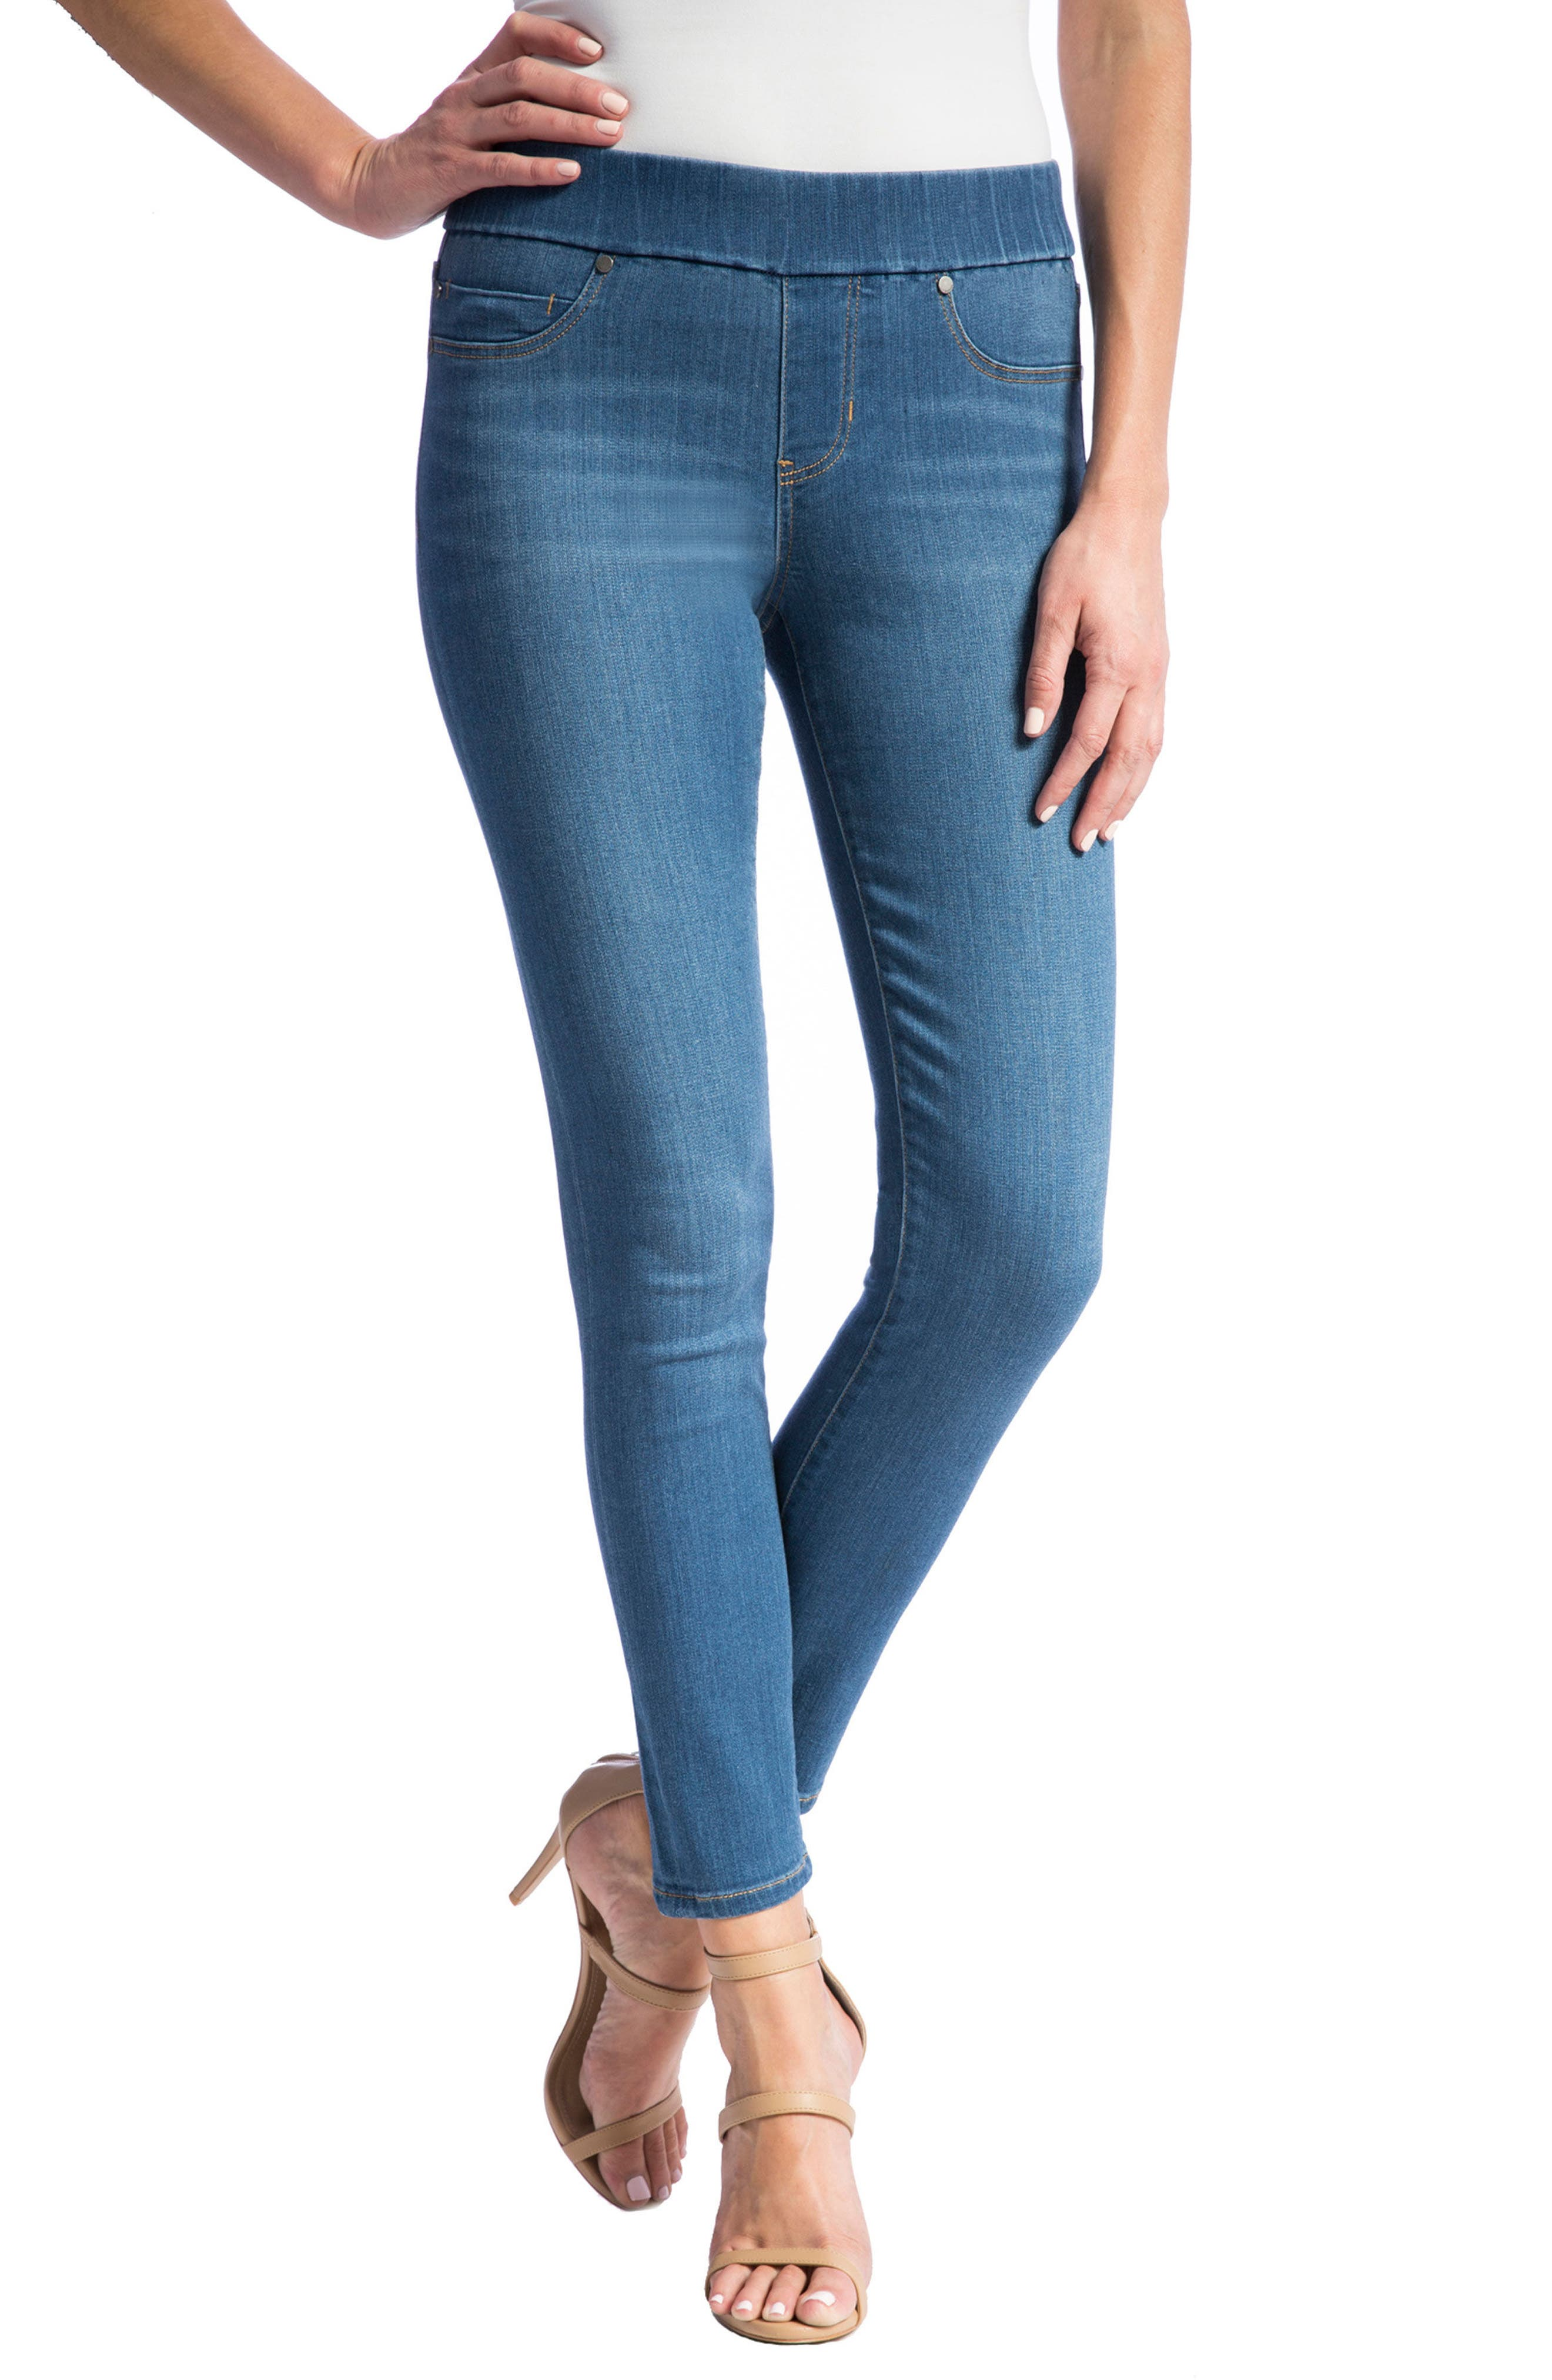 Liverpool Jeans Company High Rise Stretch Denim Ankle Leggings (Coronado Mid) (Regular & Petite)